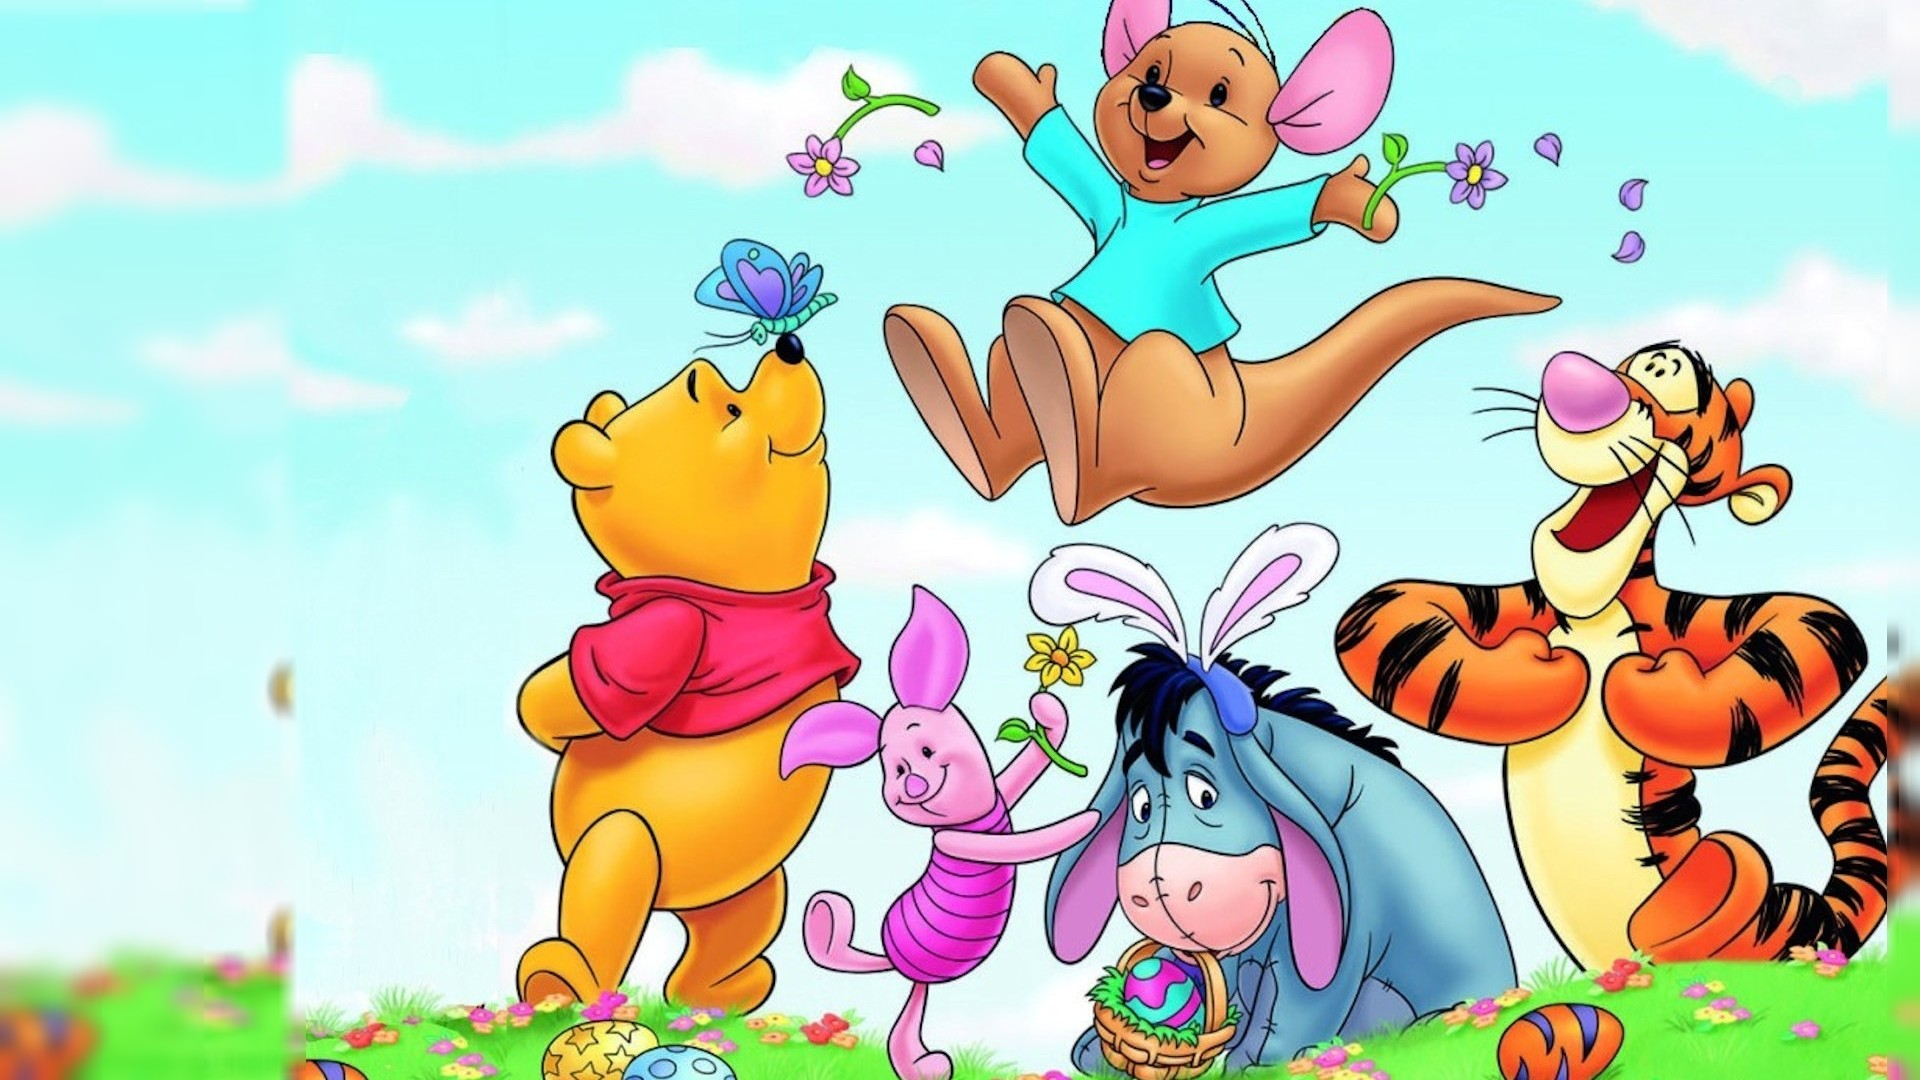 Res: 1920x1080, Winnie The Pooh Phone Wallpapers - Wallpaper Zone